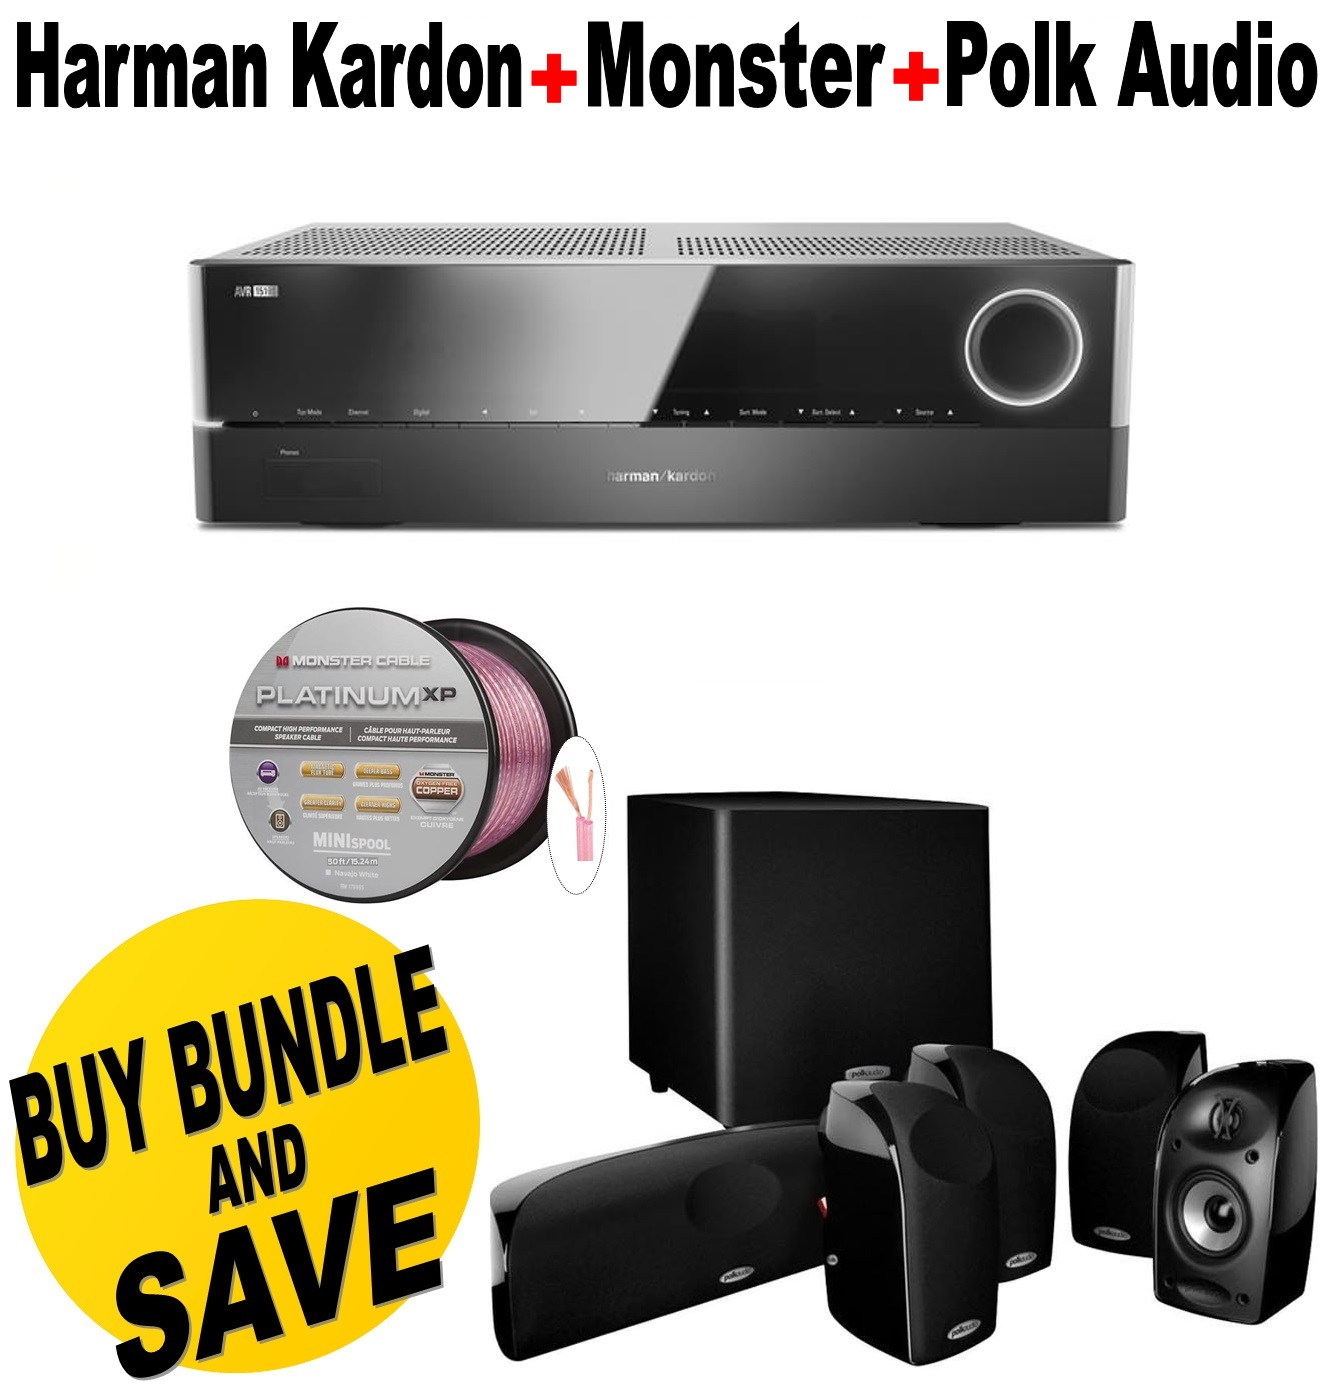 harman kardon audiophile performance home theater receiver. Black Bedroom Furniture Sets. Home Design Ideas